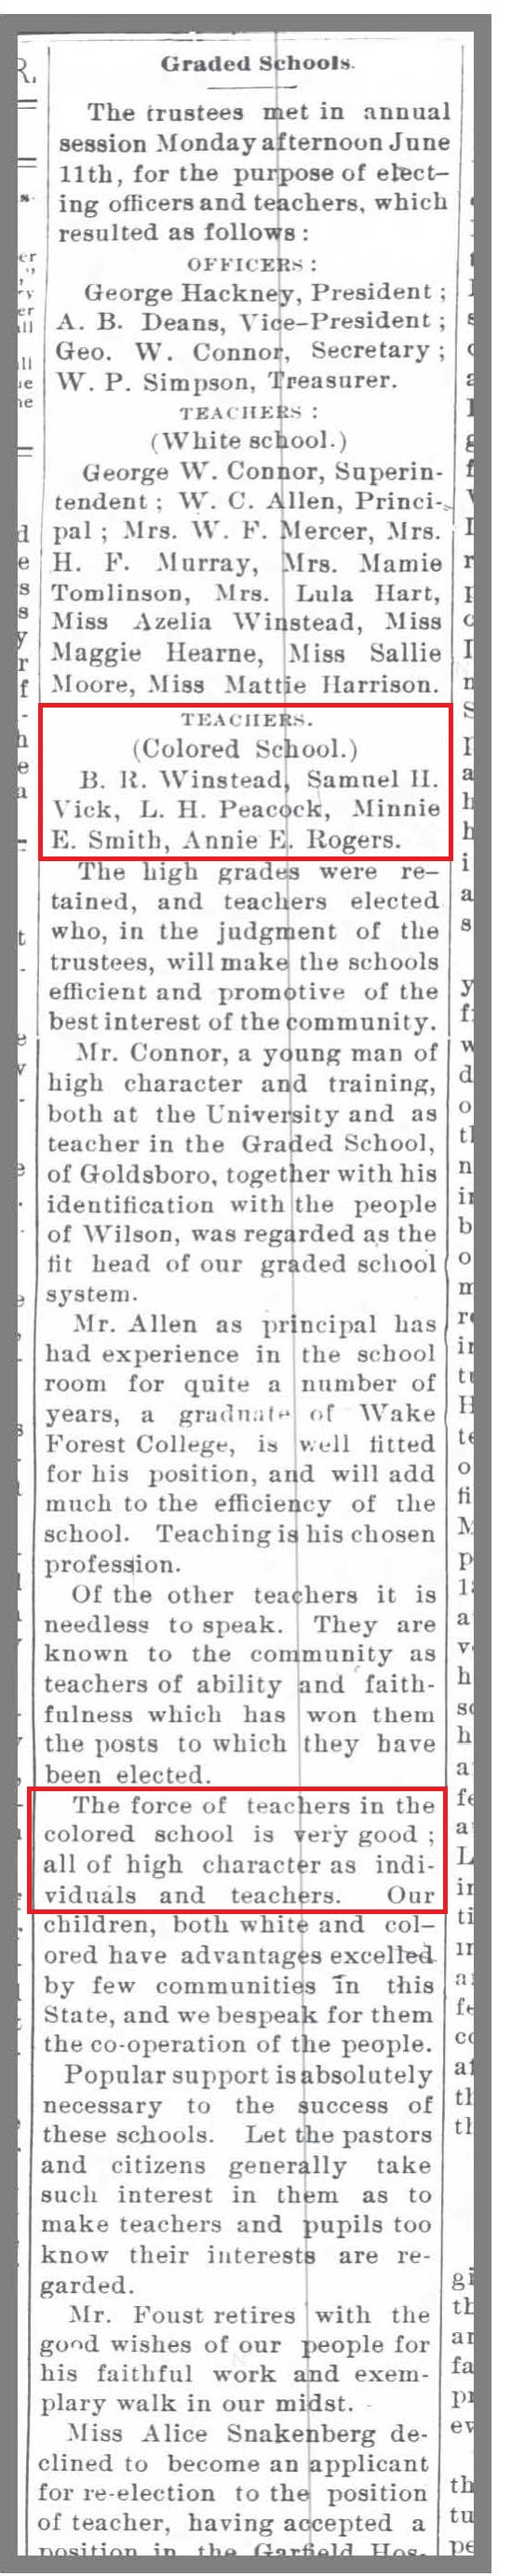 Wilson_Mirror_6_13_1894_graded_school